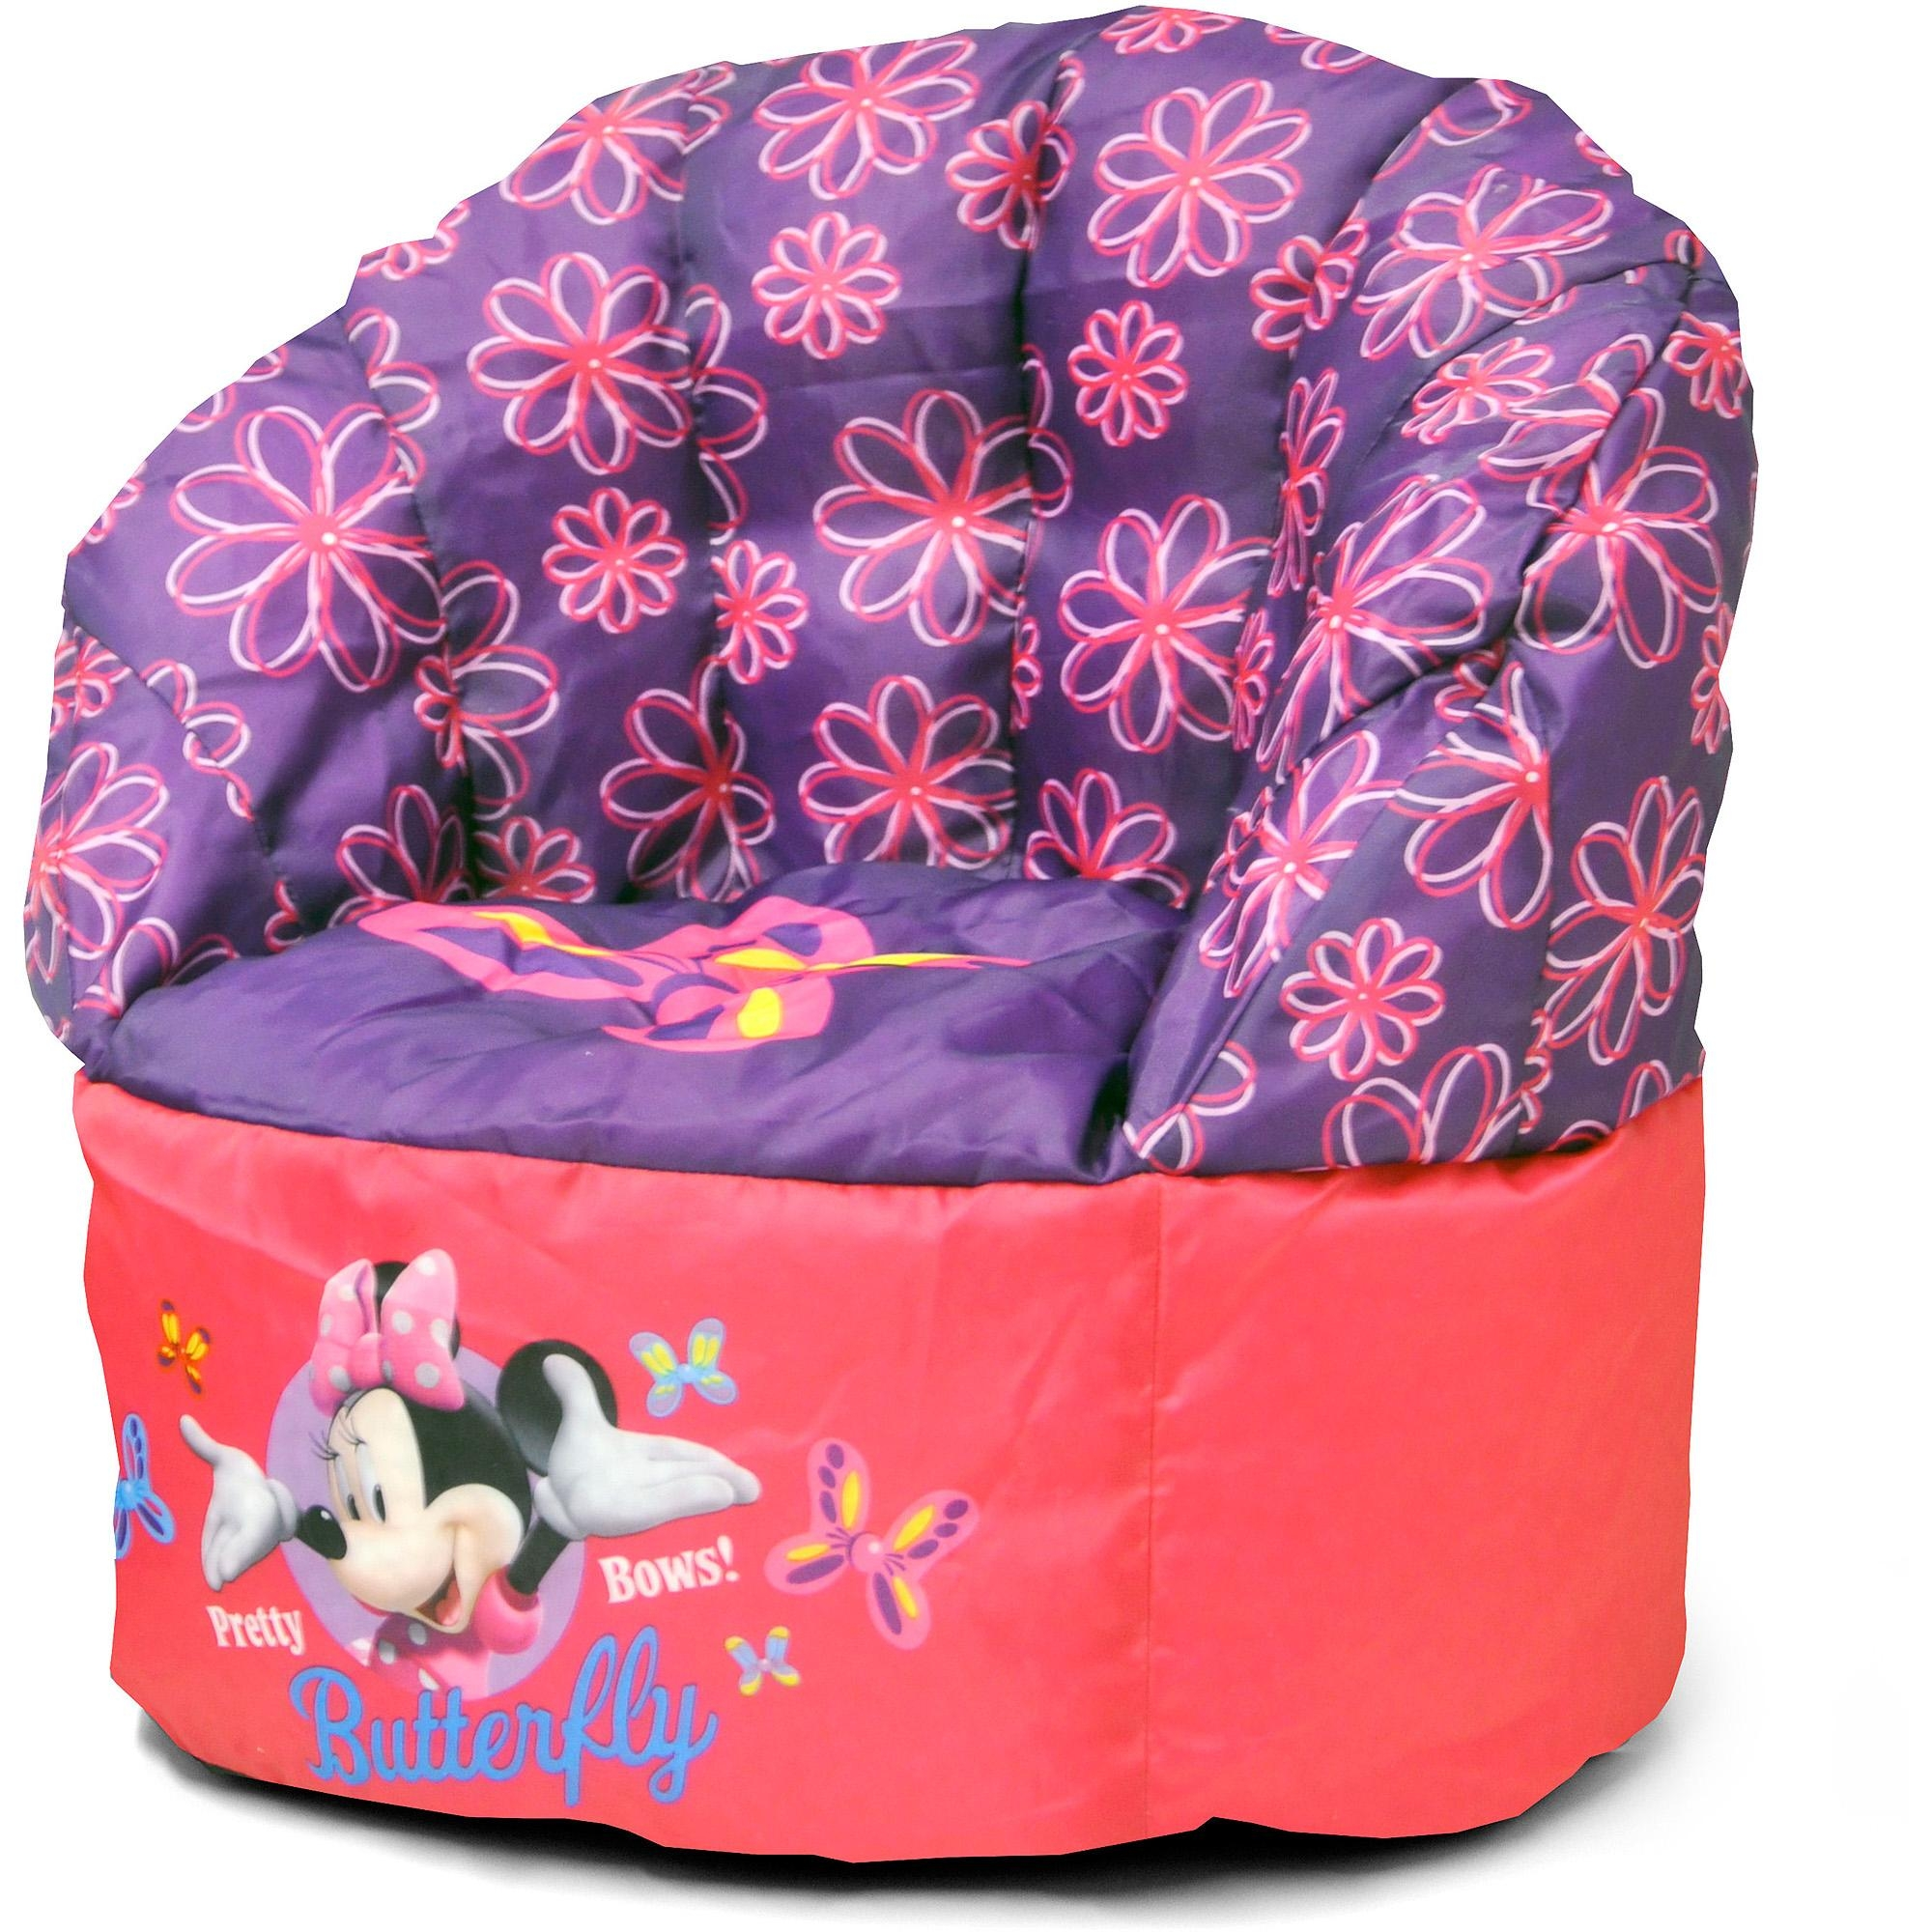 Disney Minnie Mouse Sofa Bean Chair – Walmart With Regard To Disney Sofa Chairs (Image 6 of 20)